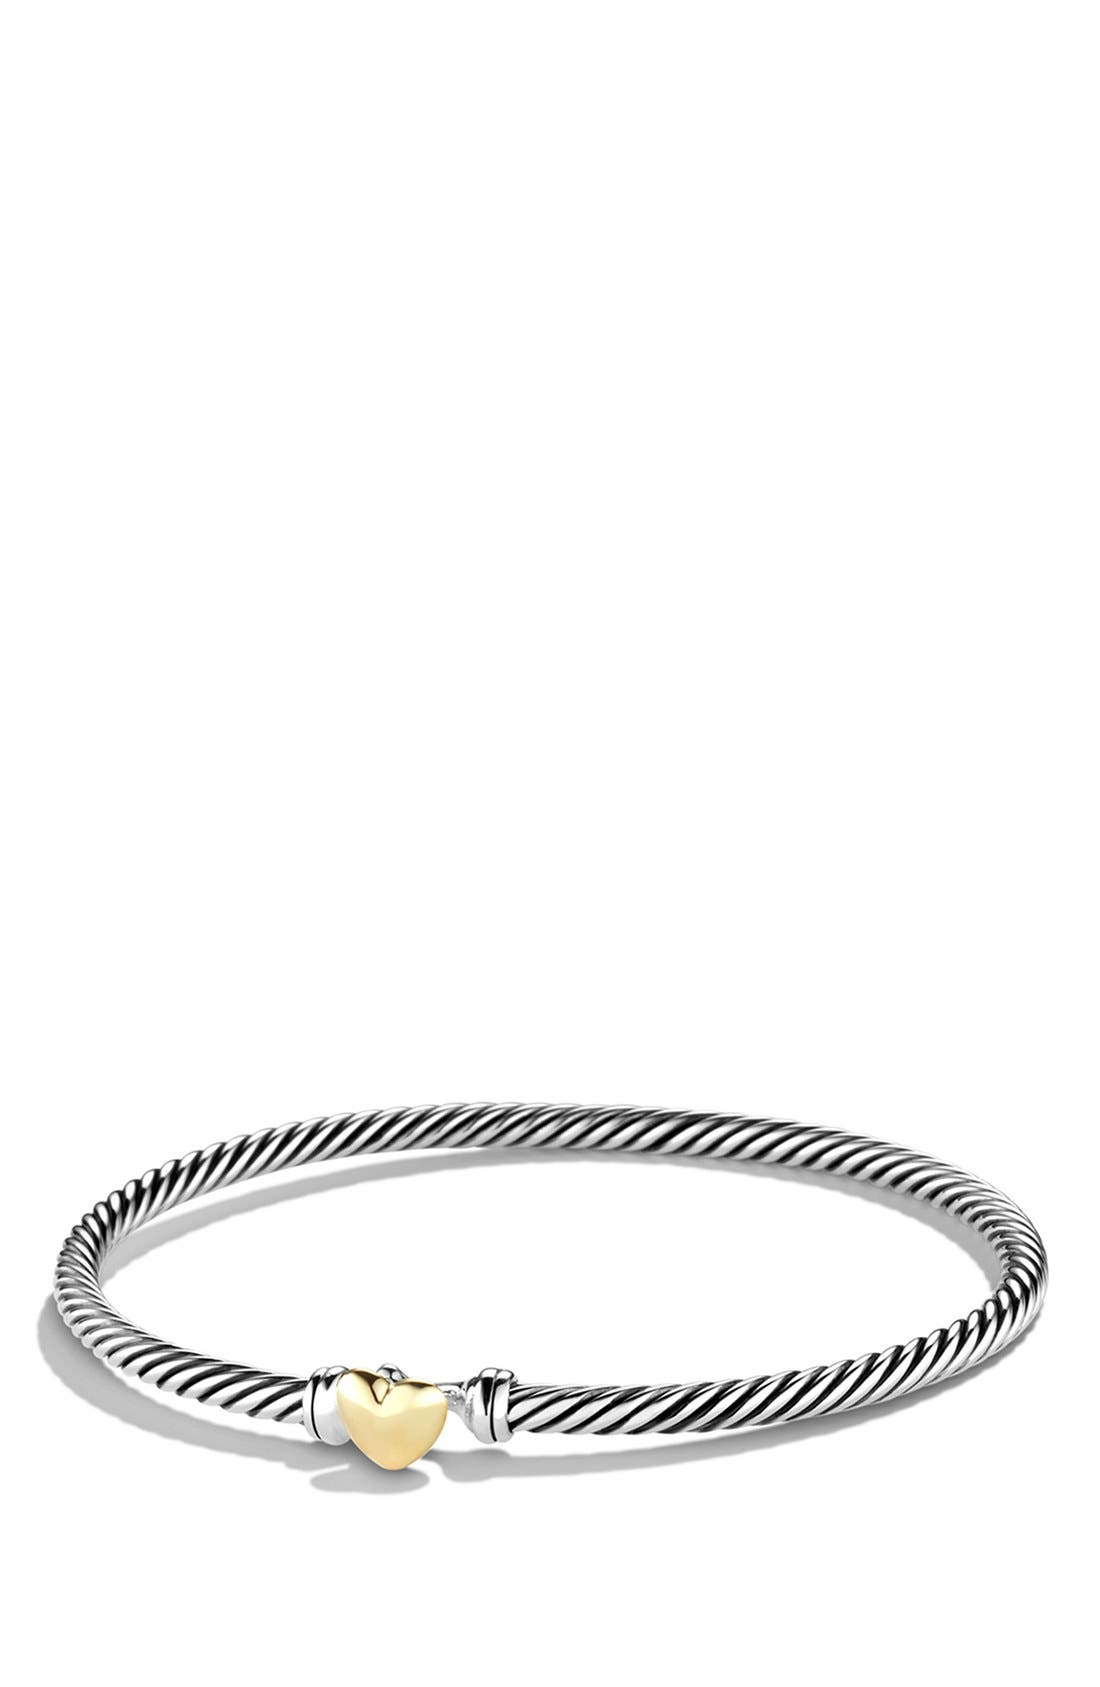 Cable Collectibles Heart Bracelet with 18K Gold,                             Main thumbnail 1, color,                             Two Tone